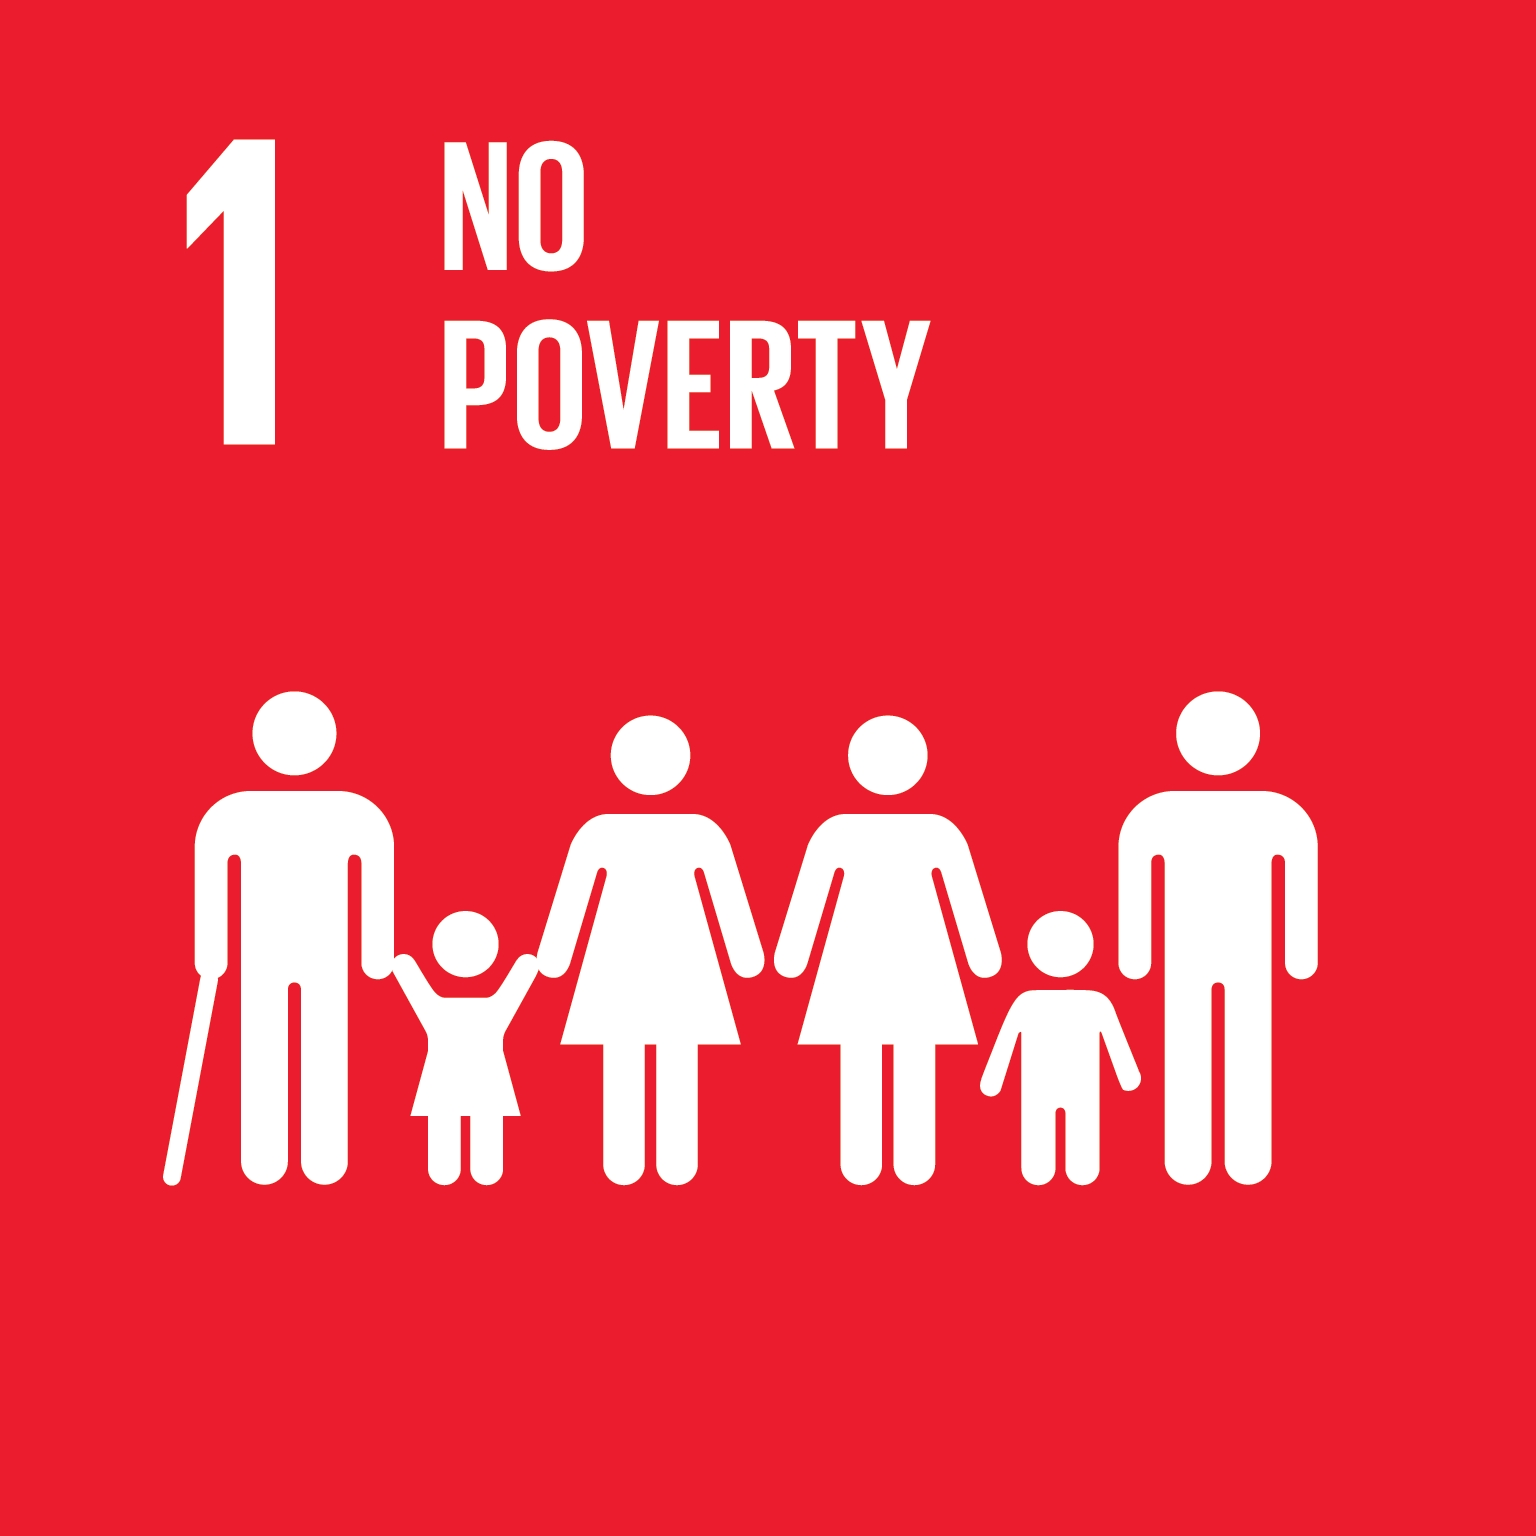 1 NO POVERTY